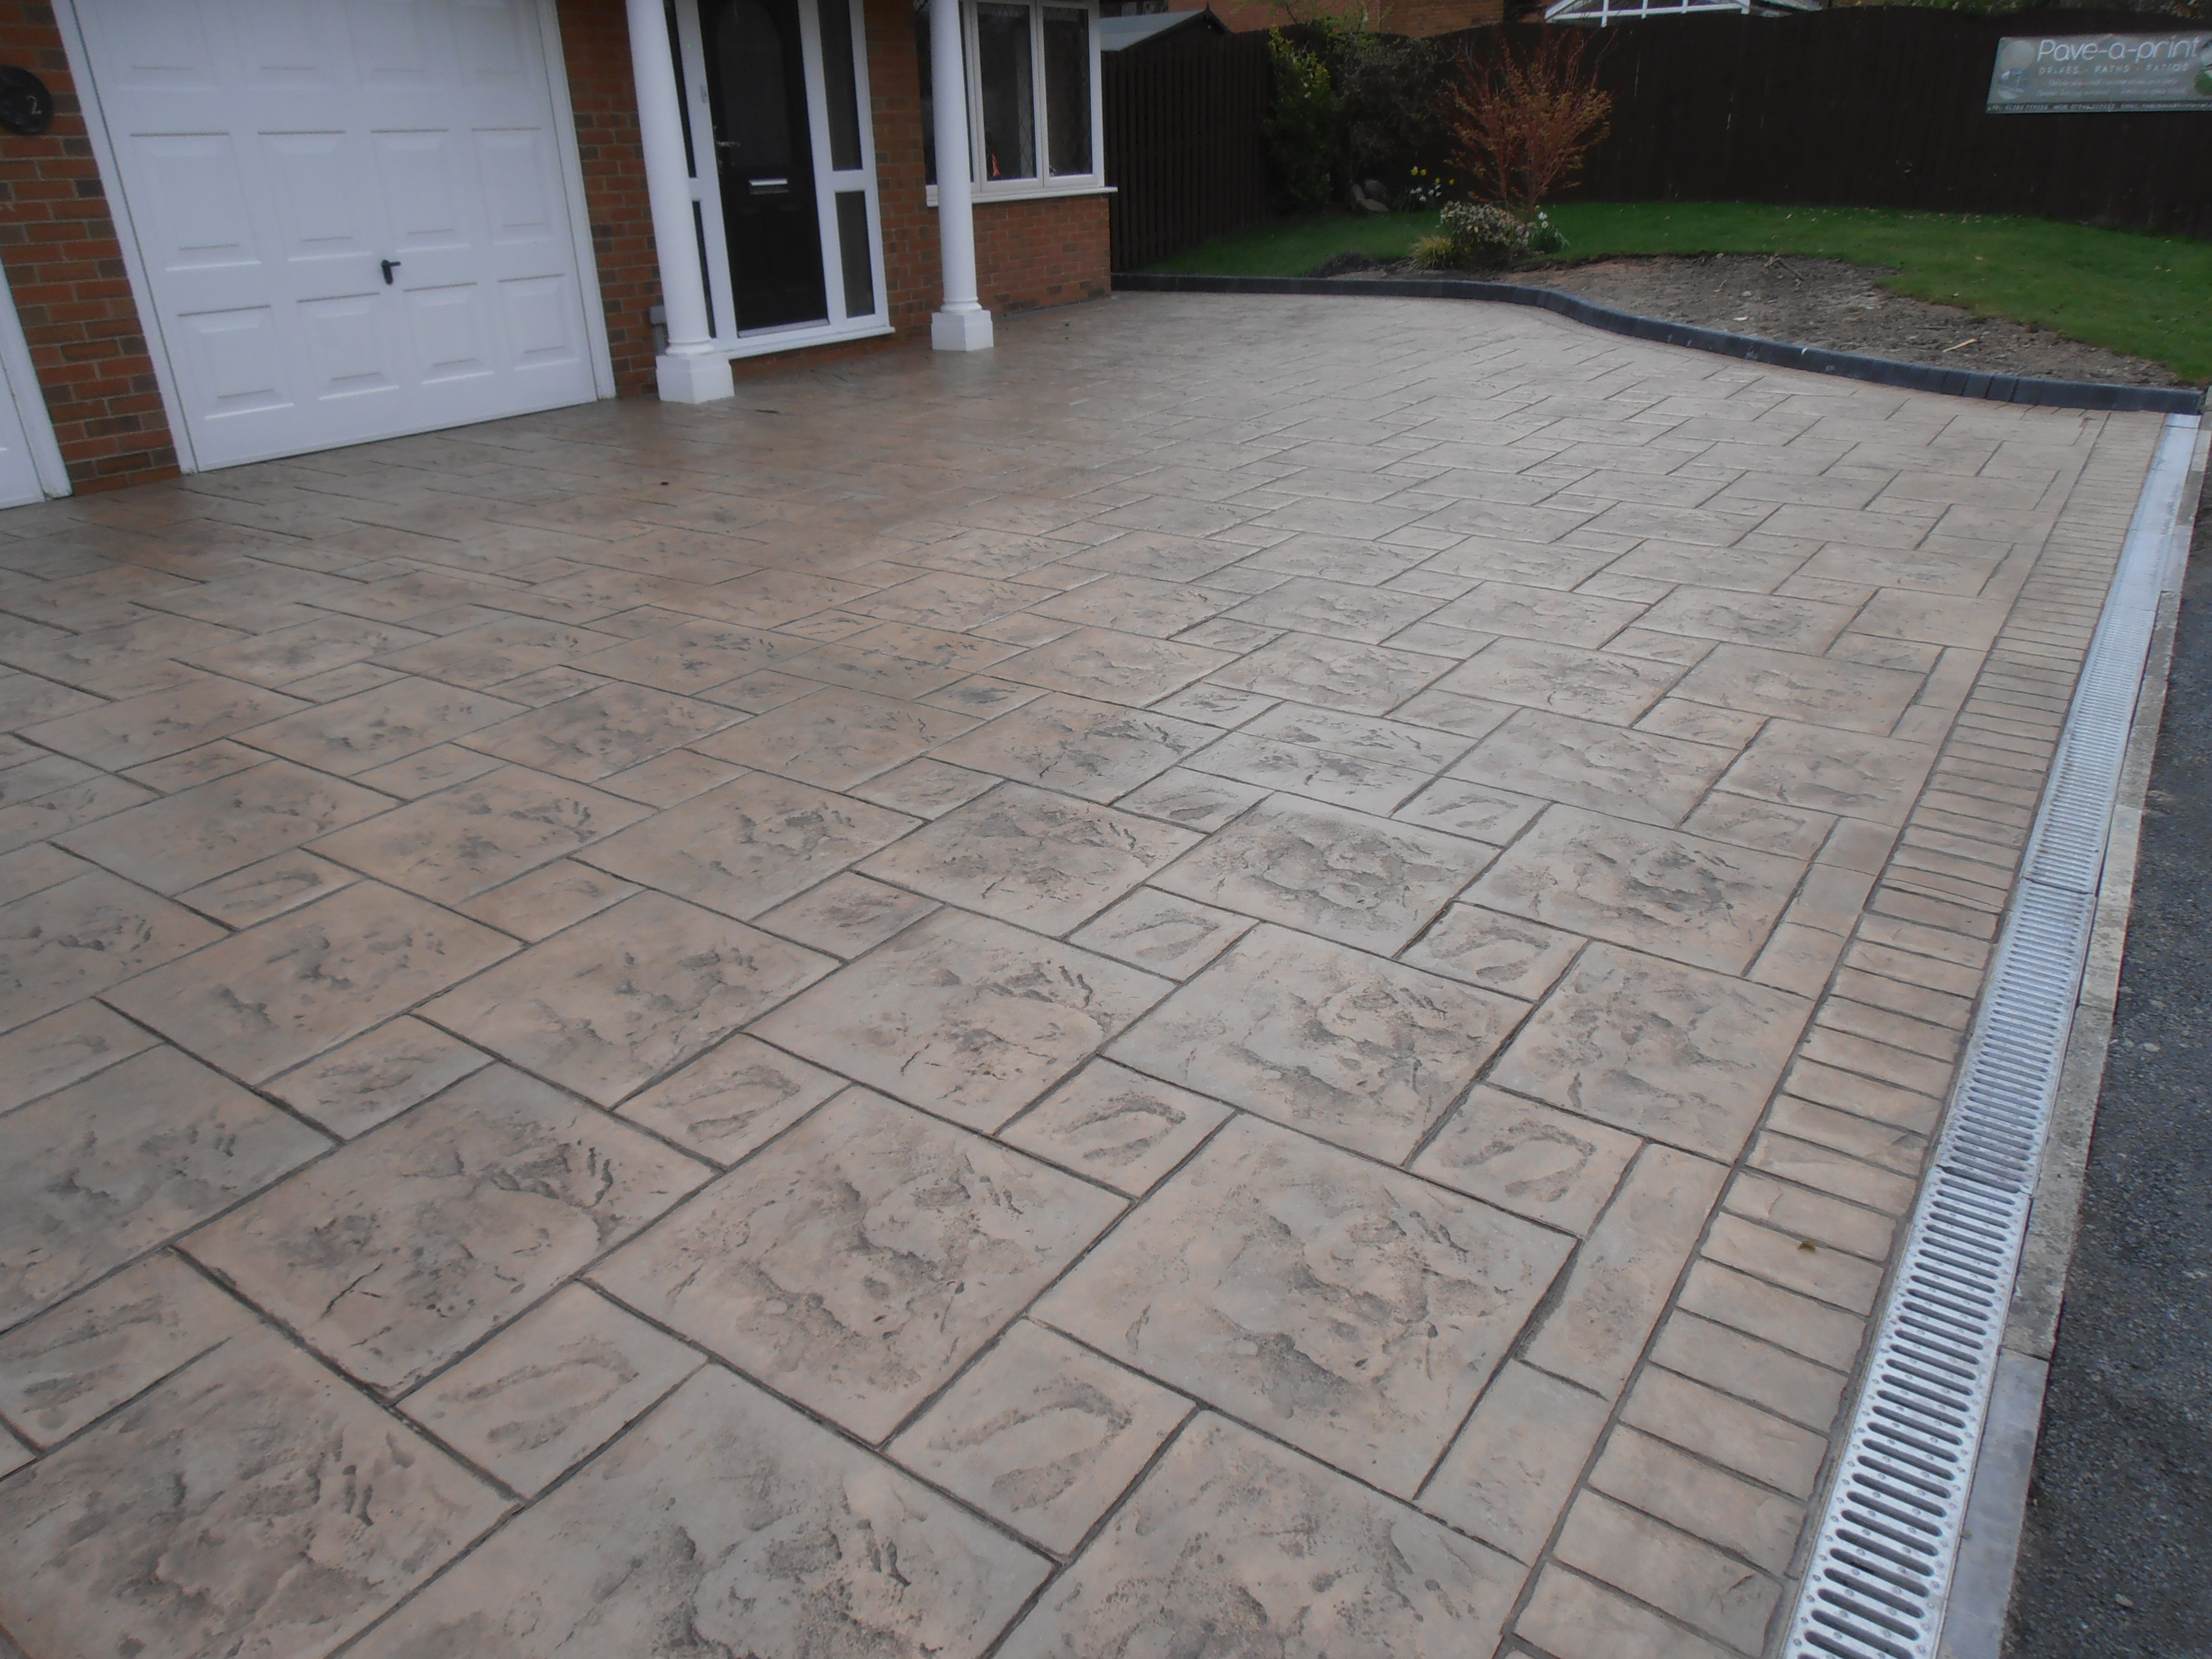 Pave A Print Are Professional Driveway Contractors